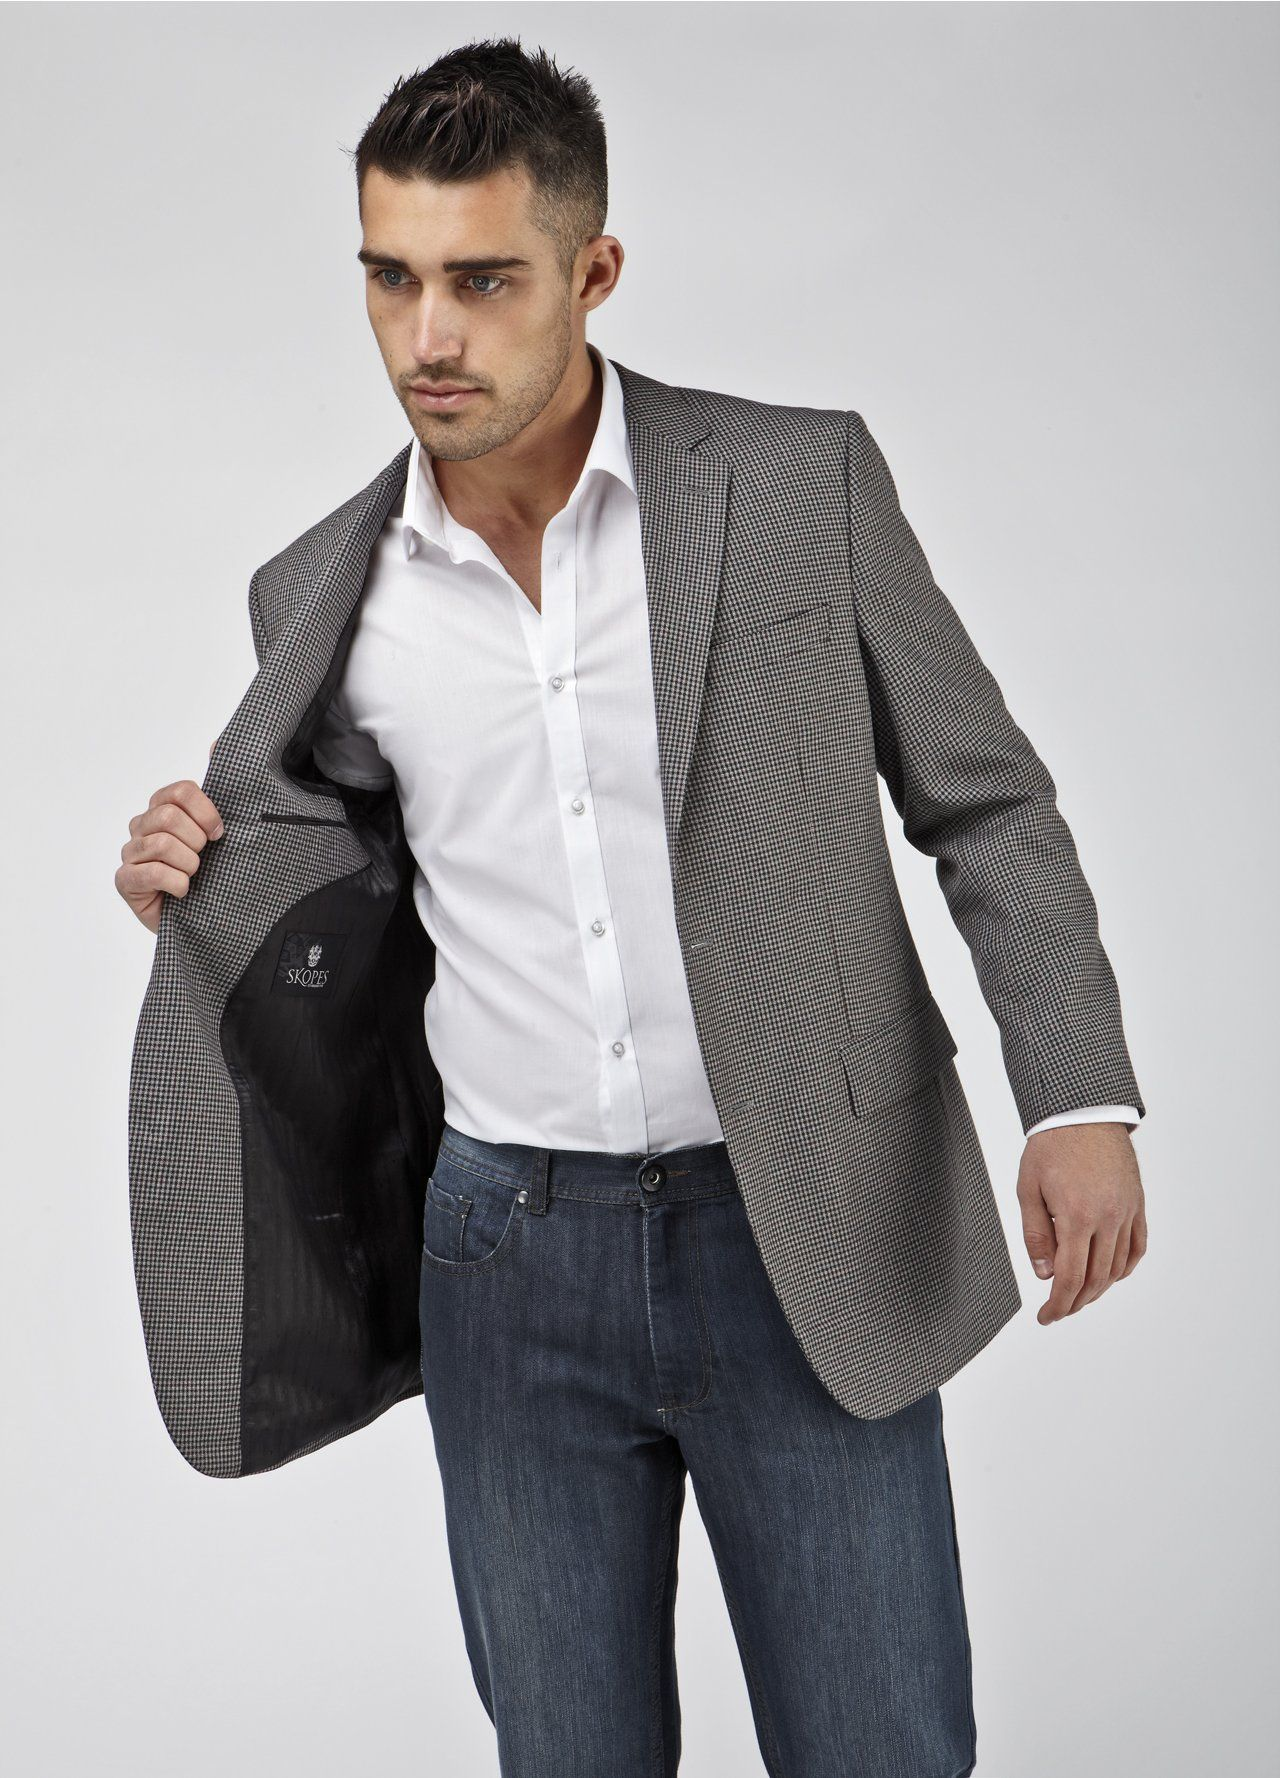 Pin on Sport jacket and blazer outfits